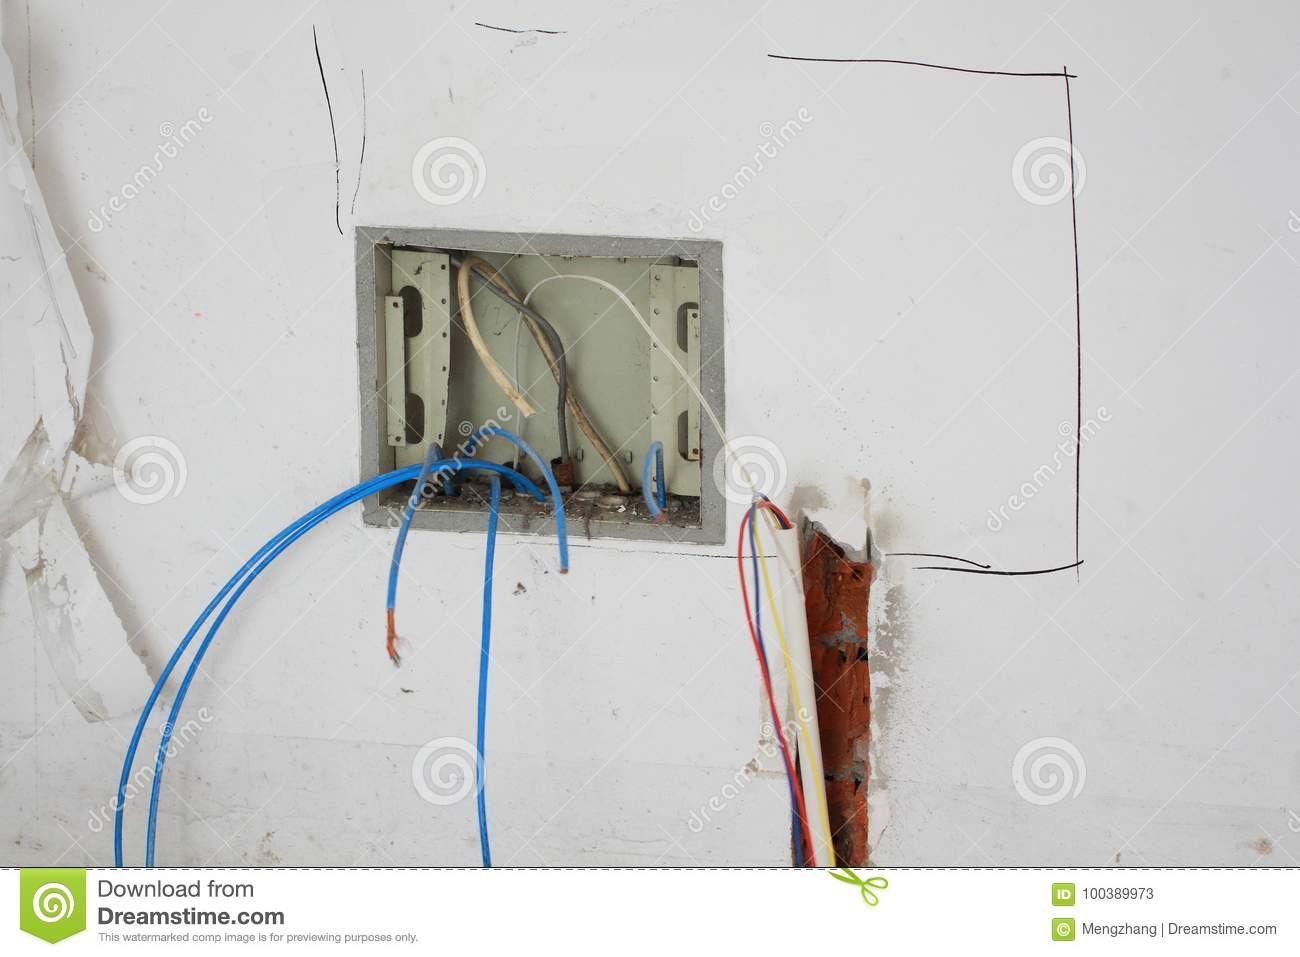 Electrical renovation work stock image. Image of hole - 100389973